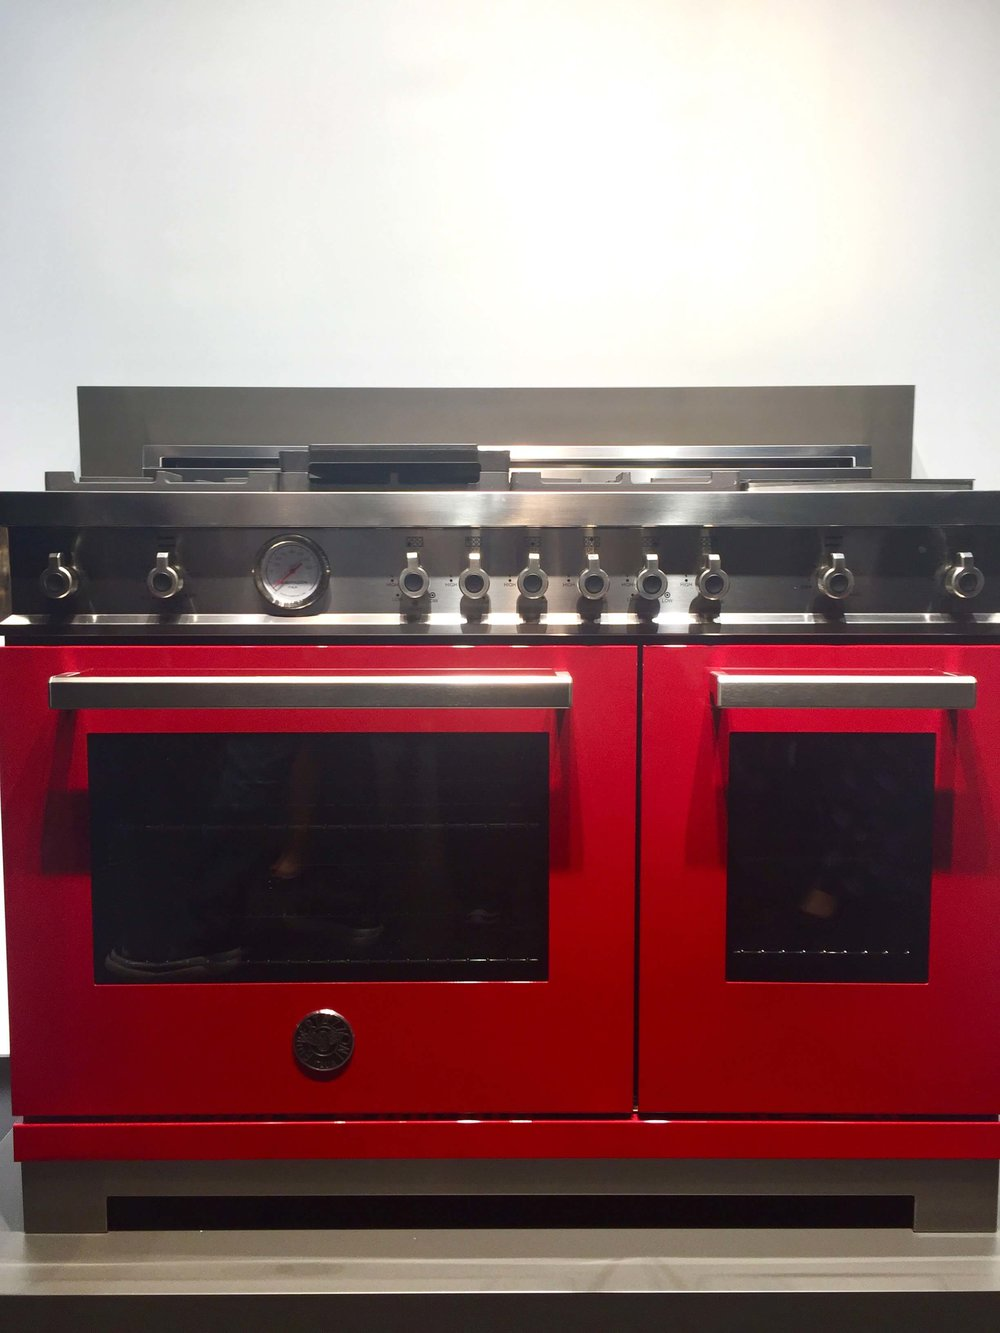 Bertazzoni ranges come in vibrant colors #bertazzoni